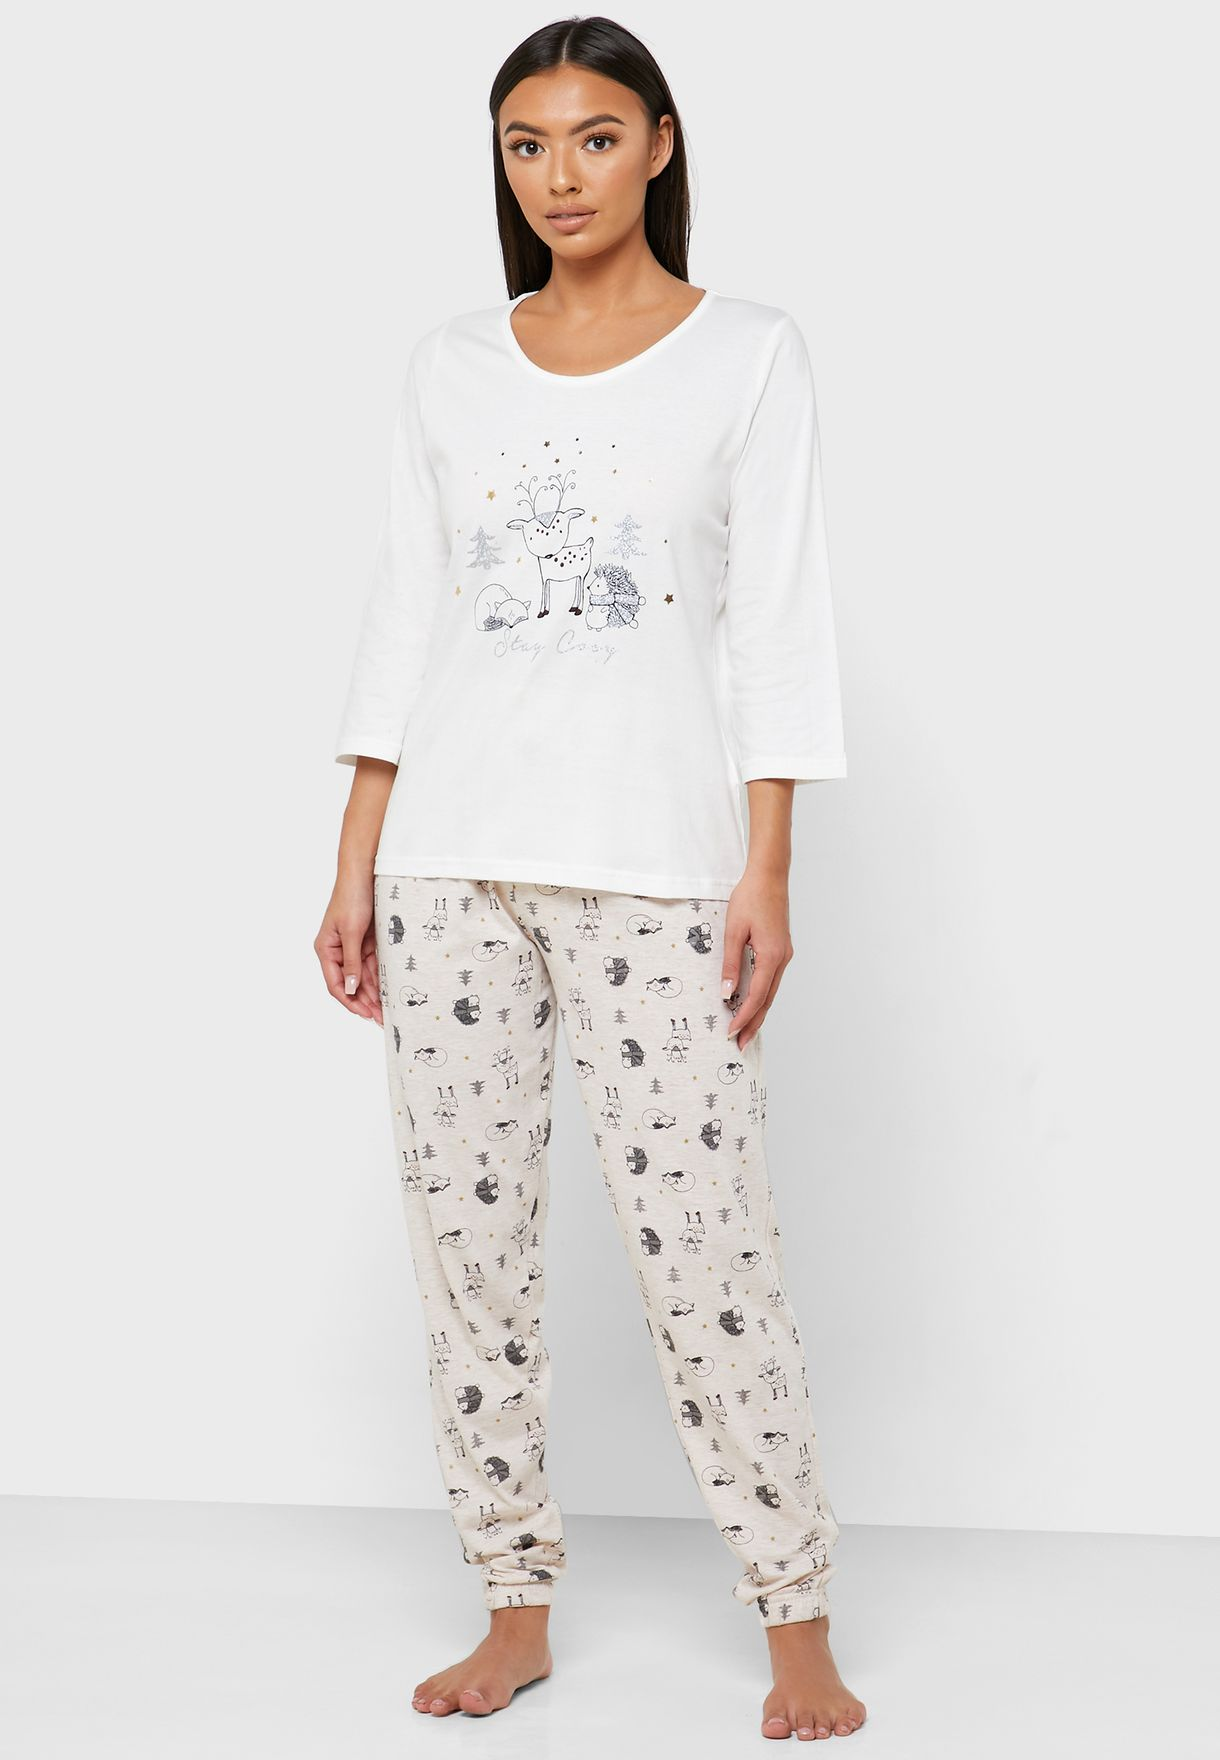 Graphic T-Shirt & Pyjama Set